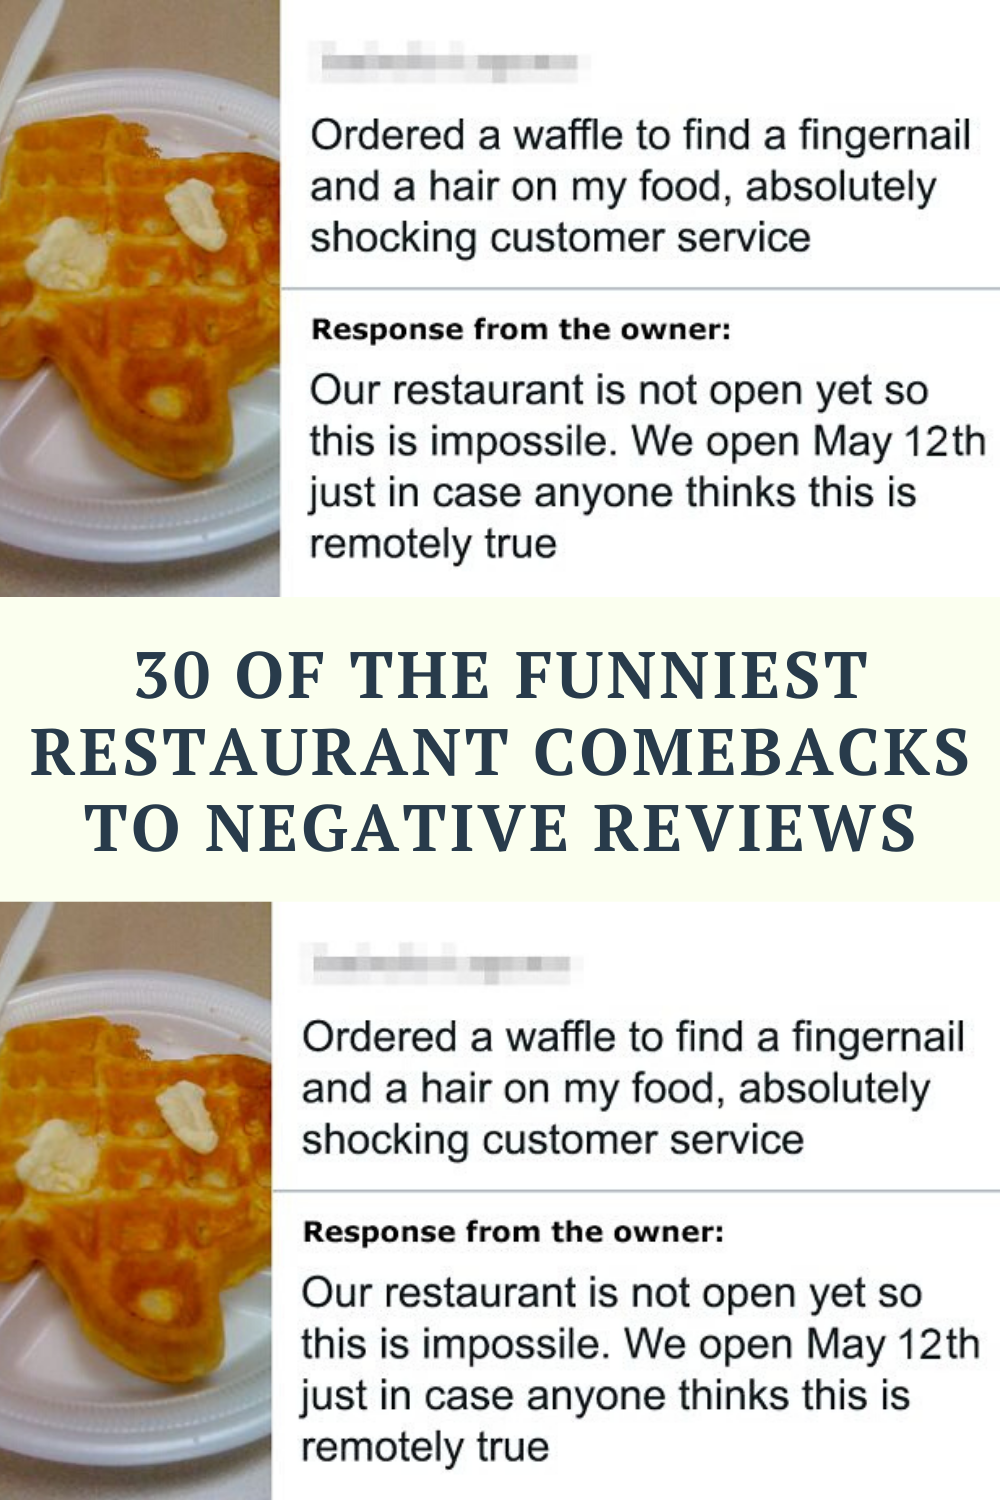 30 Of The Funniest Restaurant Comebacks To Negative Reviews